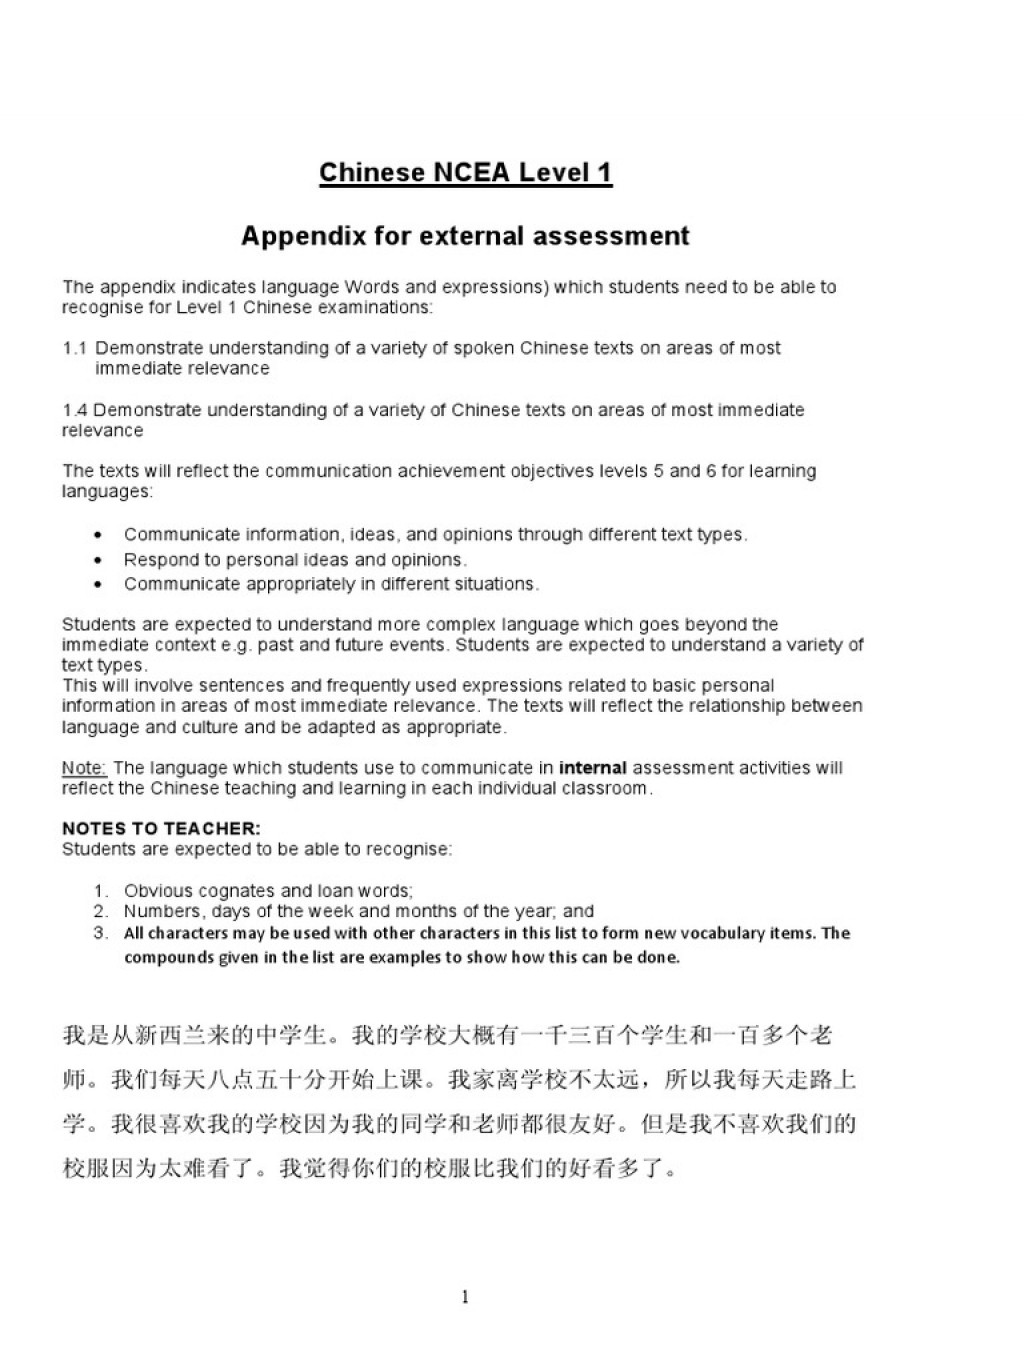 011 University Of Washington Essay Example Chinese Vocab Ncea Level 1 575ee370b6d87ff9888b4638 Unique Application Examples Prompts Bothell Prompt Large